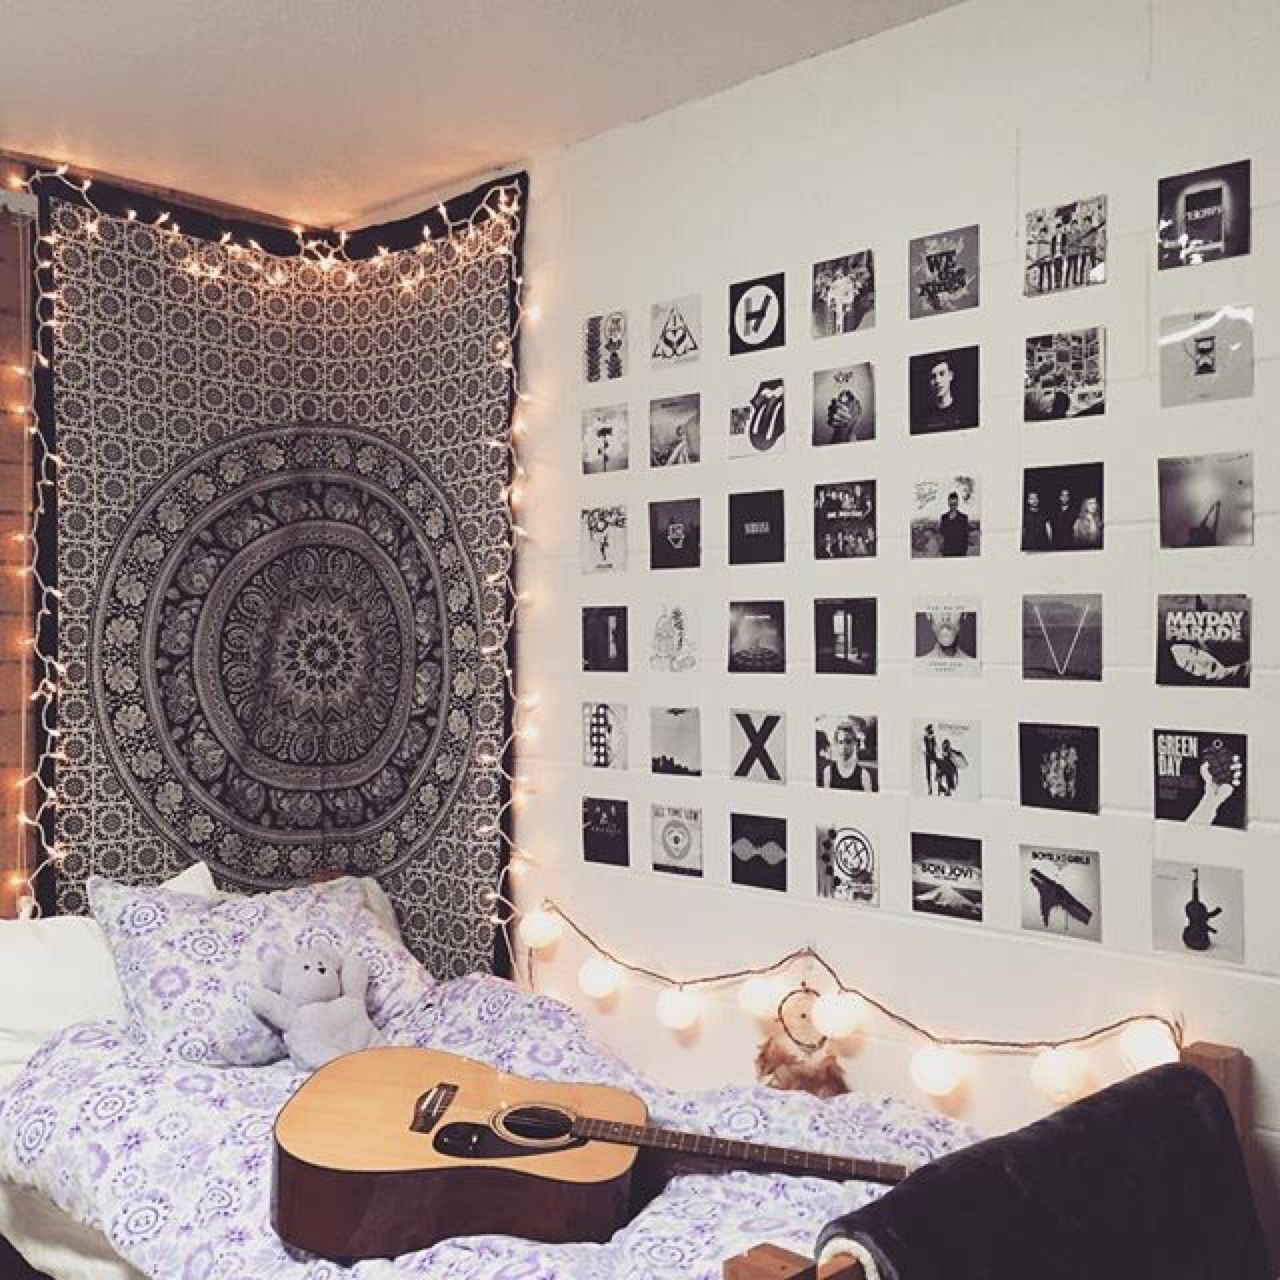 6e20fa bedroom tumblr ideas - Room Decor Tumblr Buscar Con Google